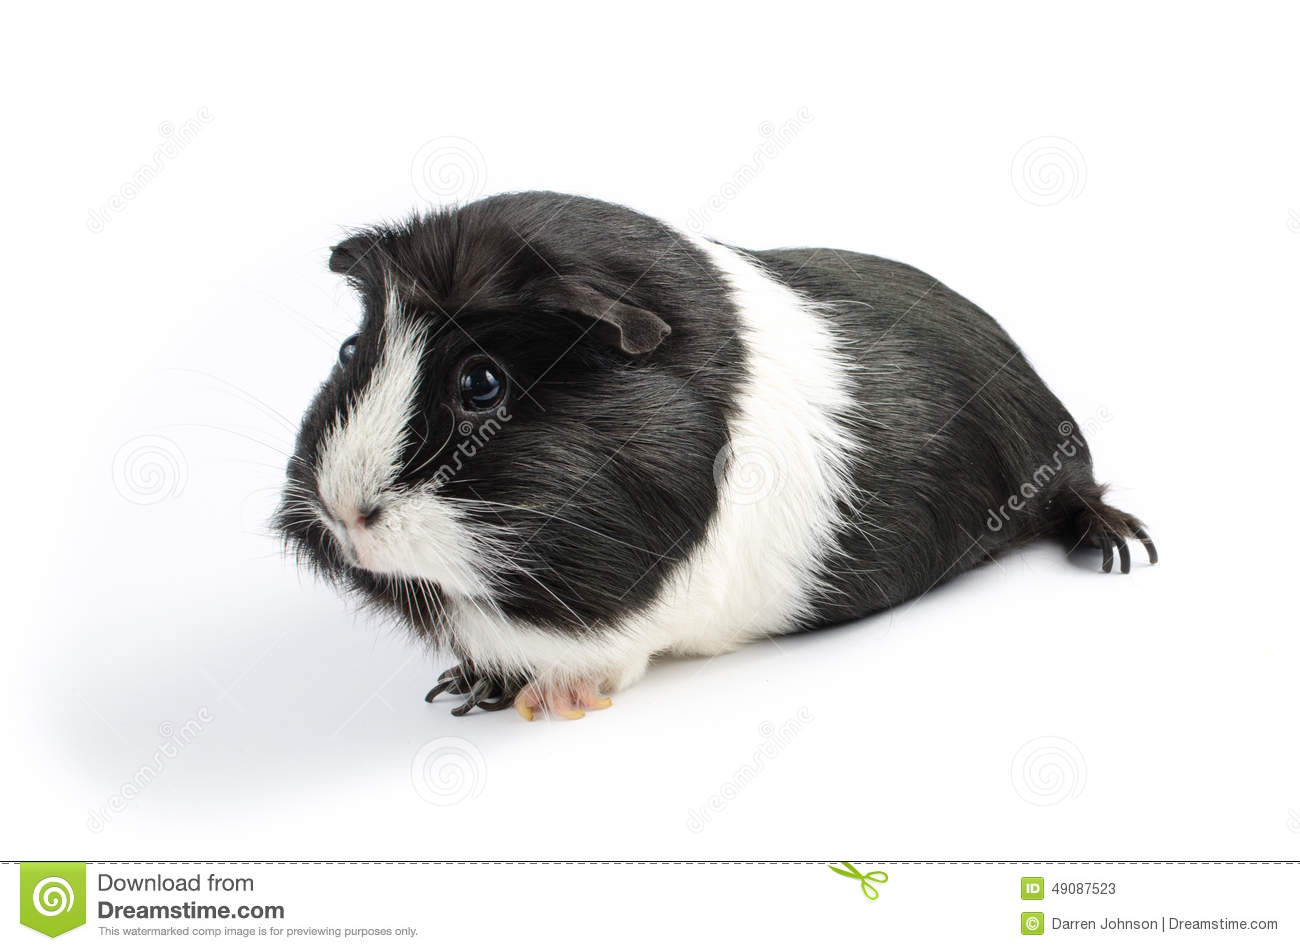 Black And White Guinea Pig Sideon Stock Photo - Image: 49087523